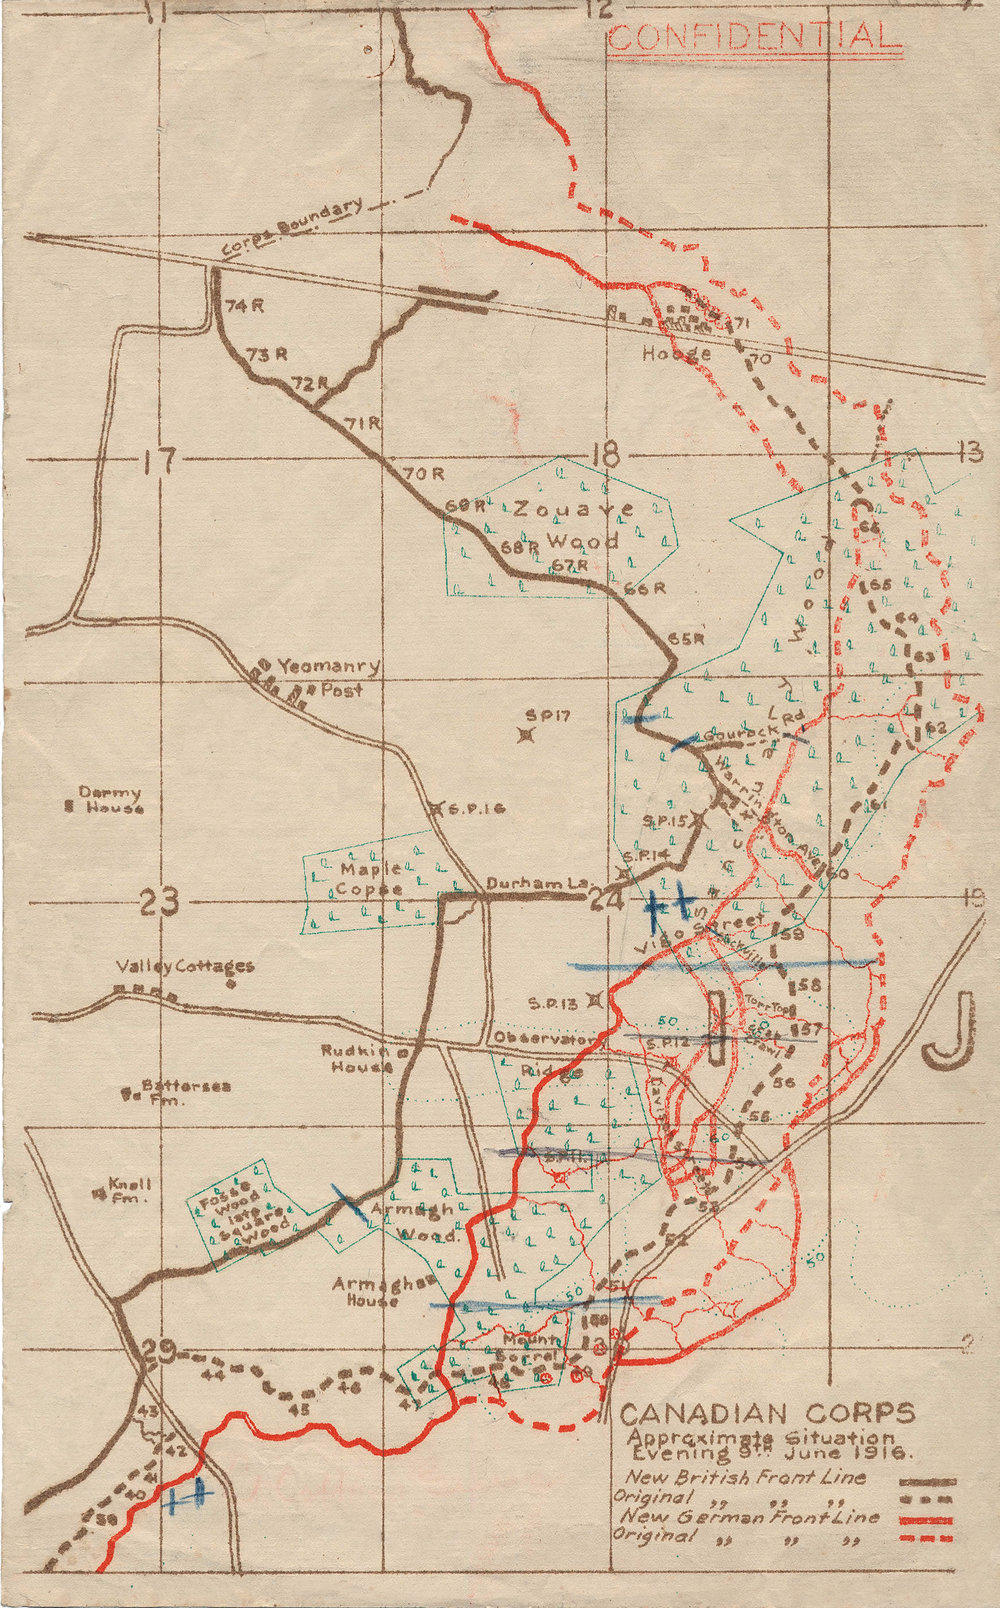 The 31st occupied the brown line from 74R on the Menin Road (running across map at an angle near top) to S.P. (Strong Point) 14. The two blue slashes between 65R and Gourock Rd. appear to be MG positions described in the War Diary. Nicholls was likely in one of those positions on the 13th. Some trenches aren't numbered on this map. 64R, 63R, 62R etc. would follow the brown line south from 65r to the intersection with Durham Lane. R stands for 'reserve'.